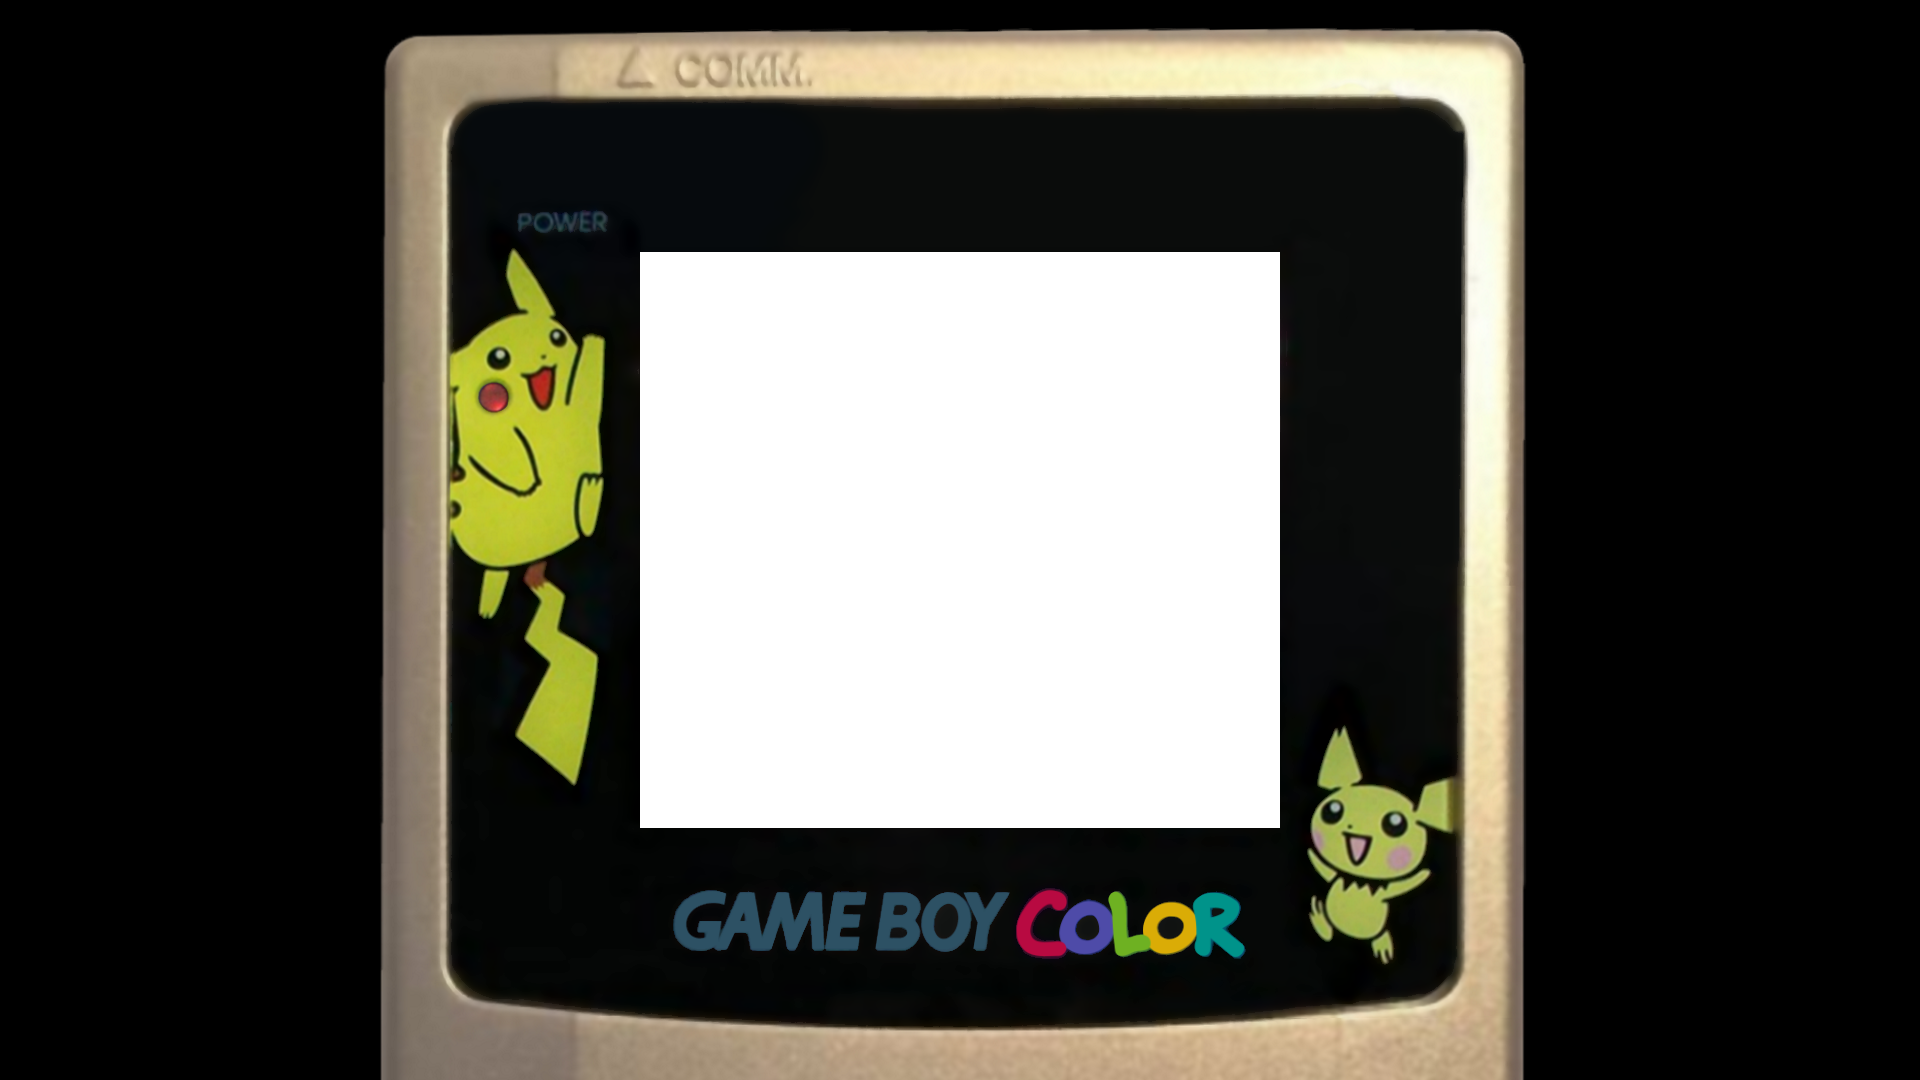 Game Boy Color - Pokemon Gold